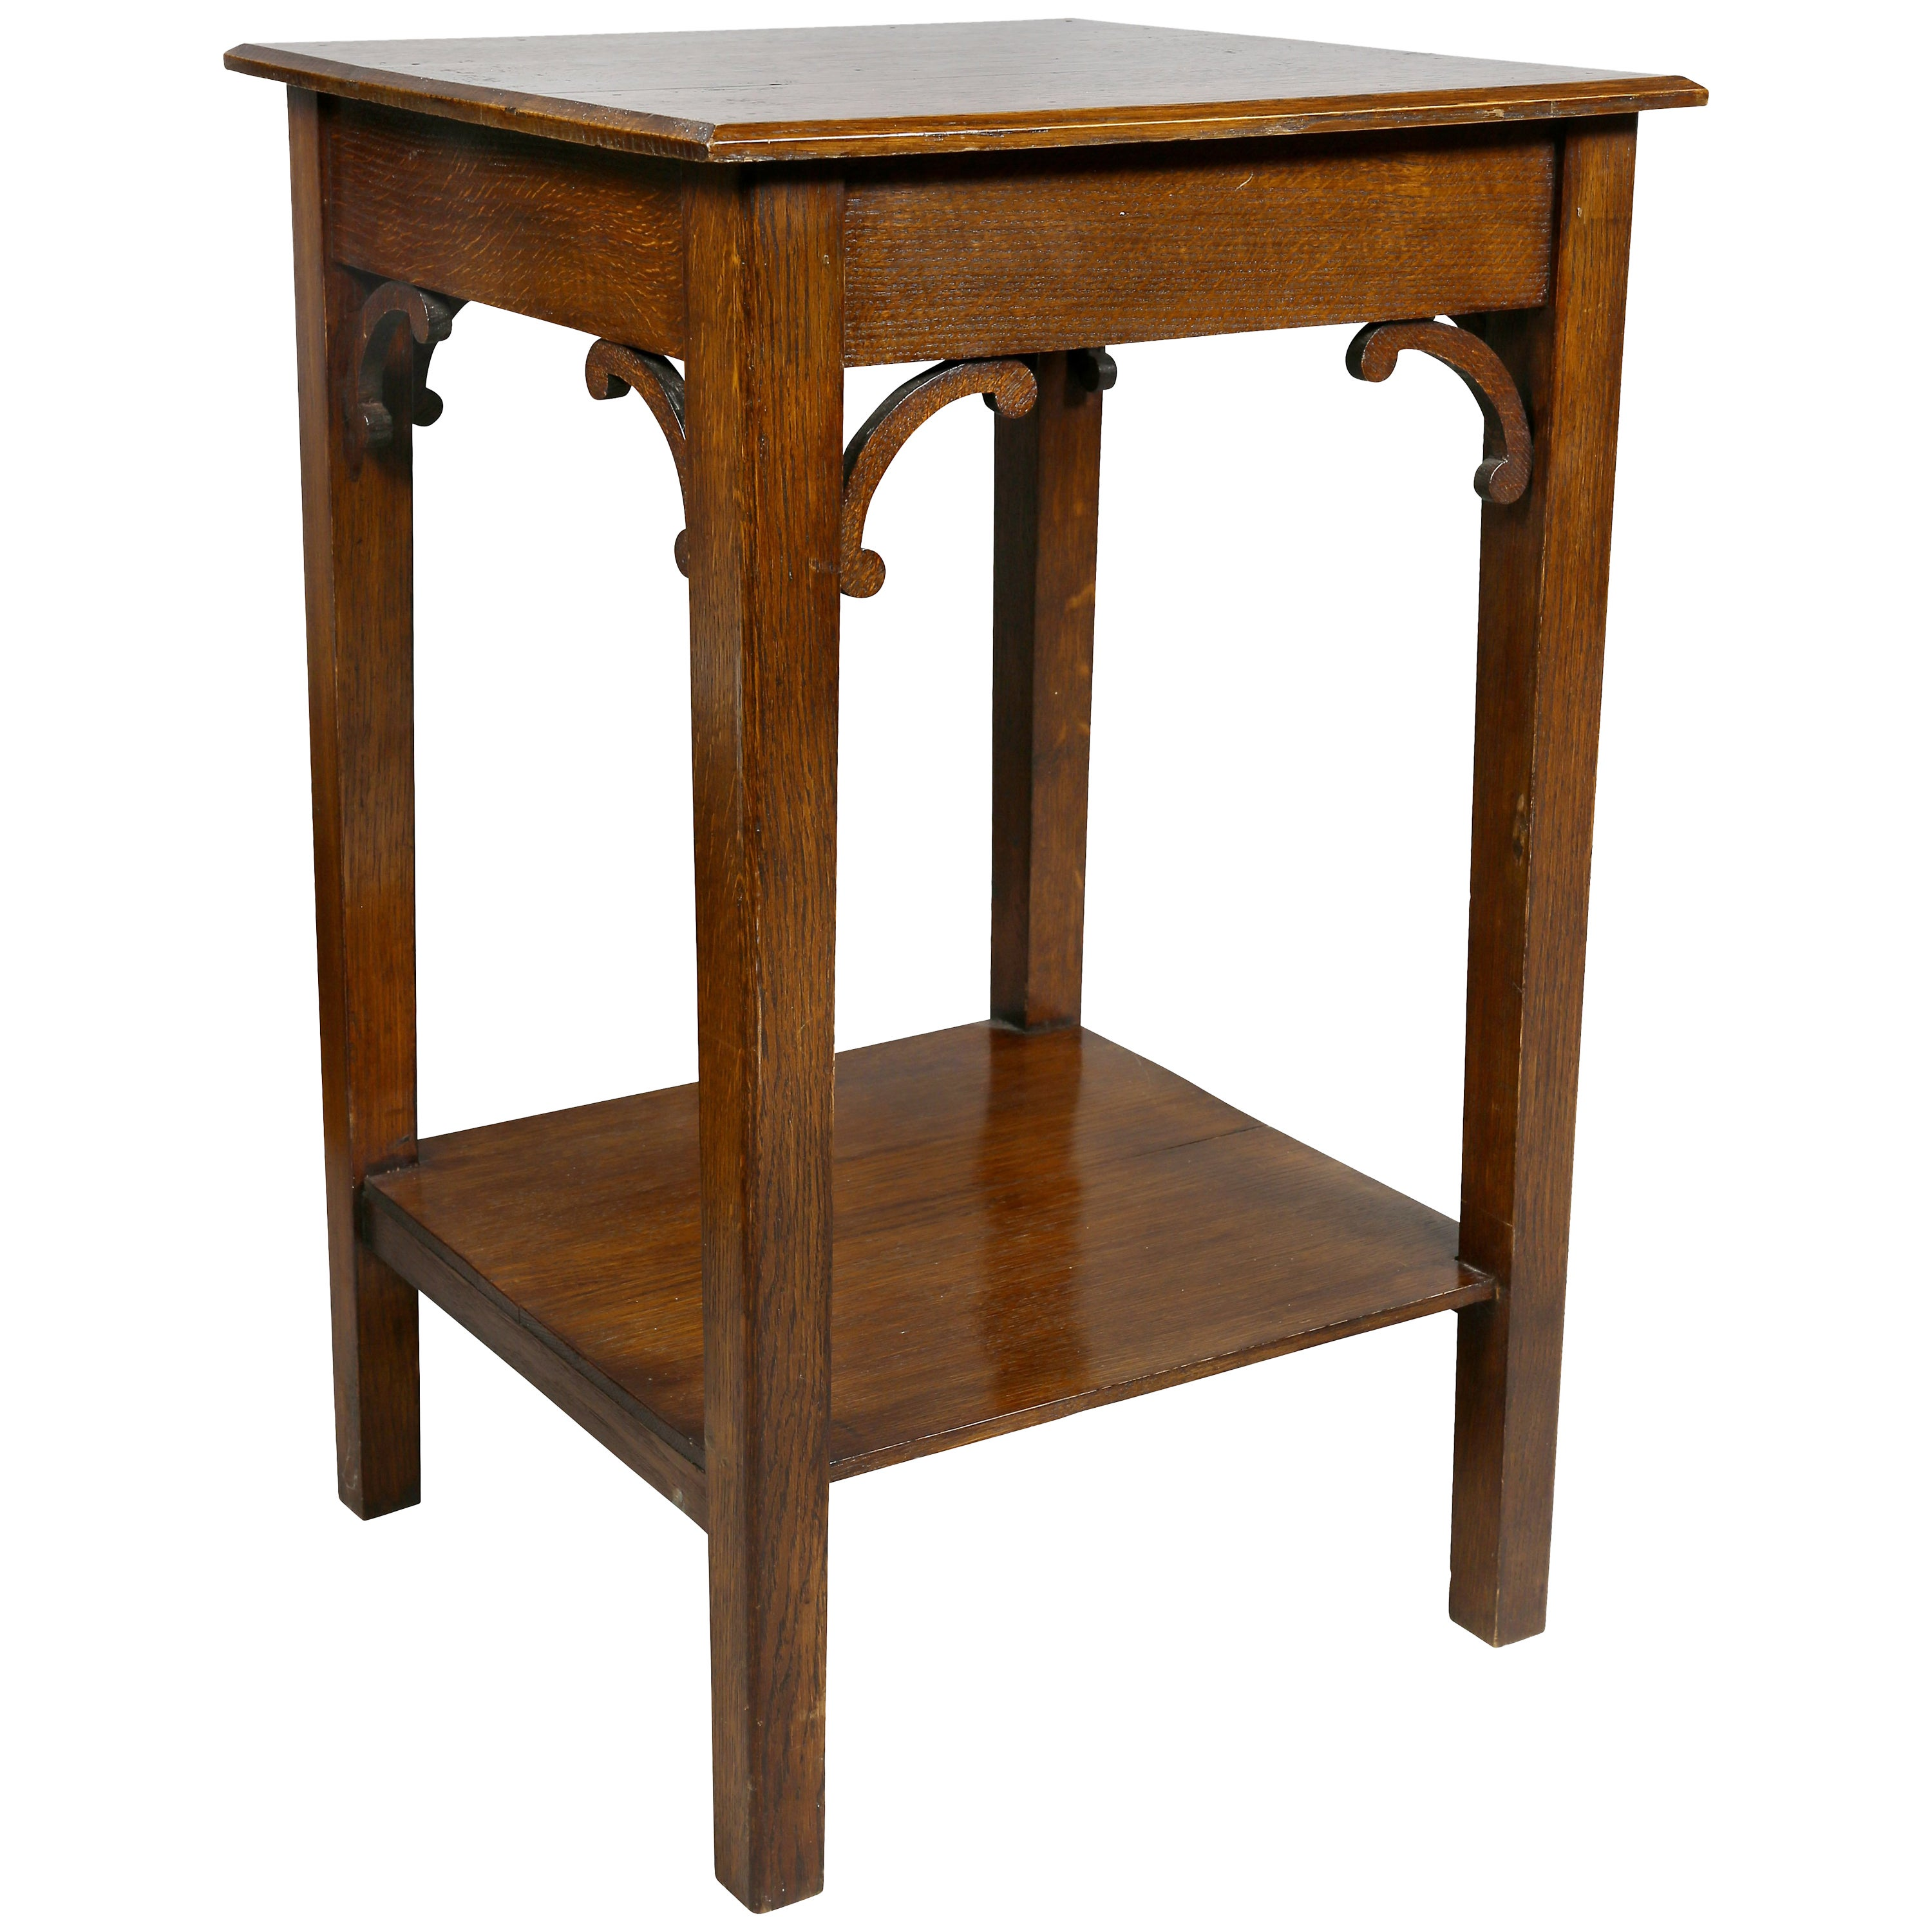 English Arts and Crafts Oak End Table